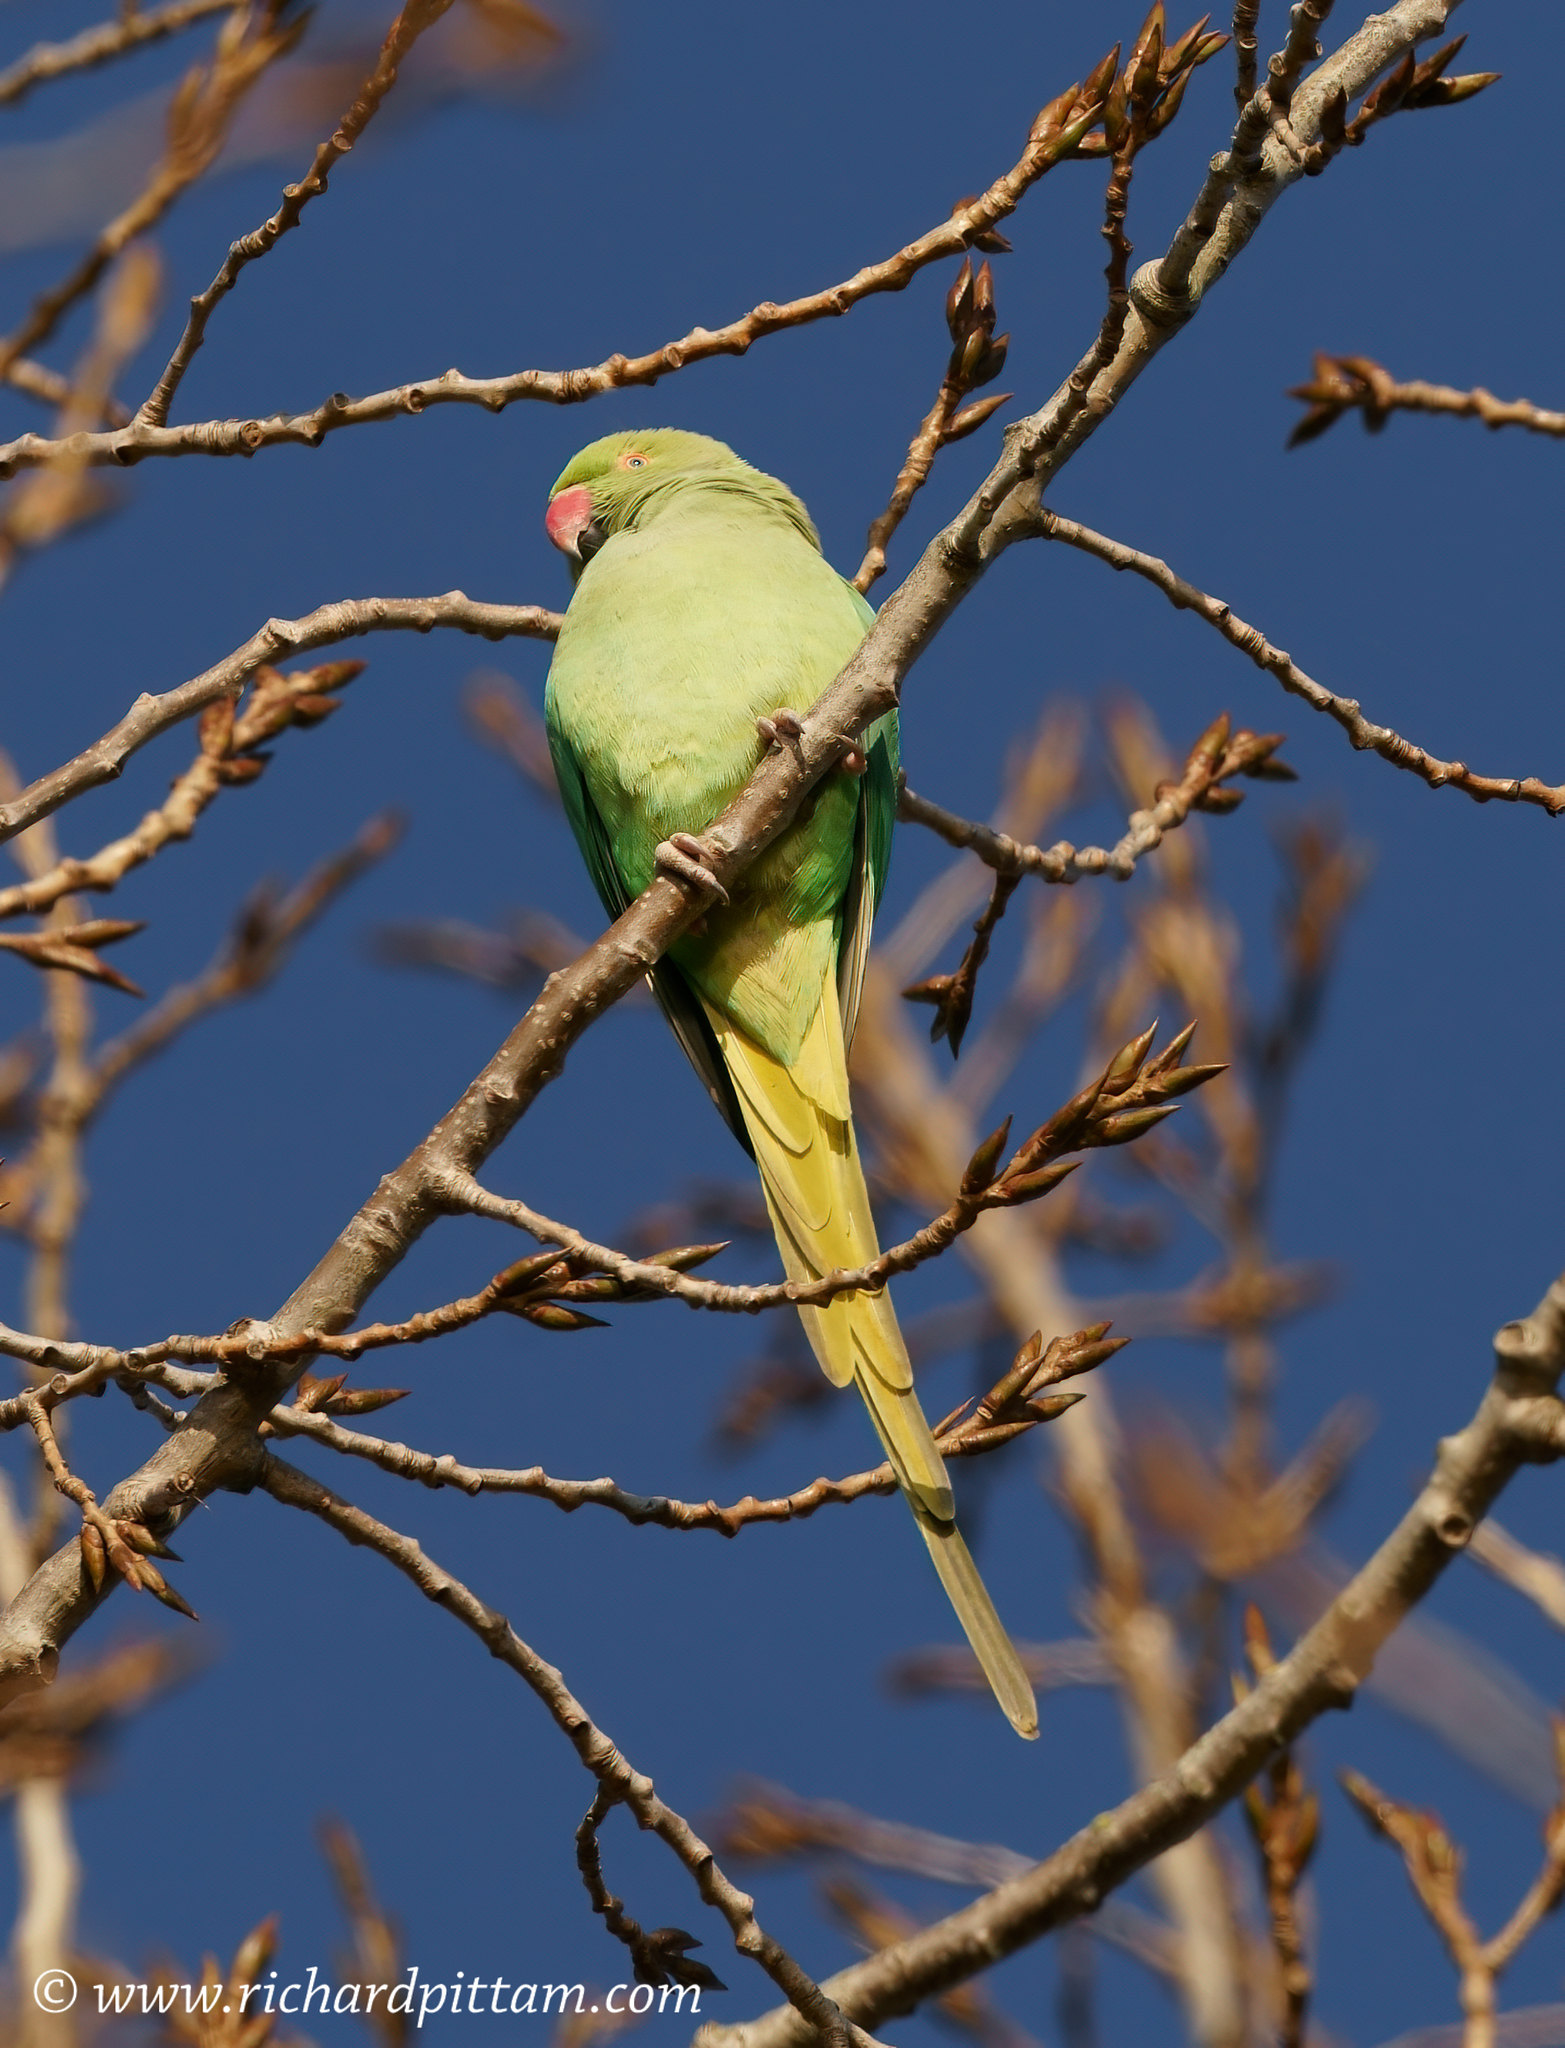 Pesky Ring-necked Parakeet